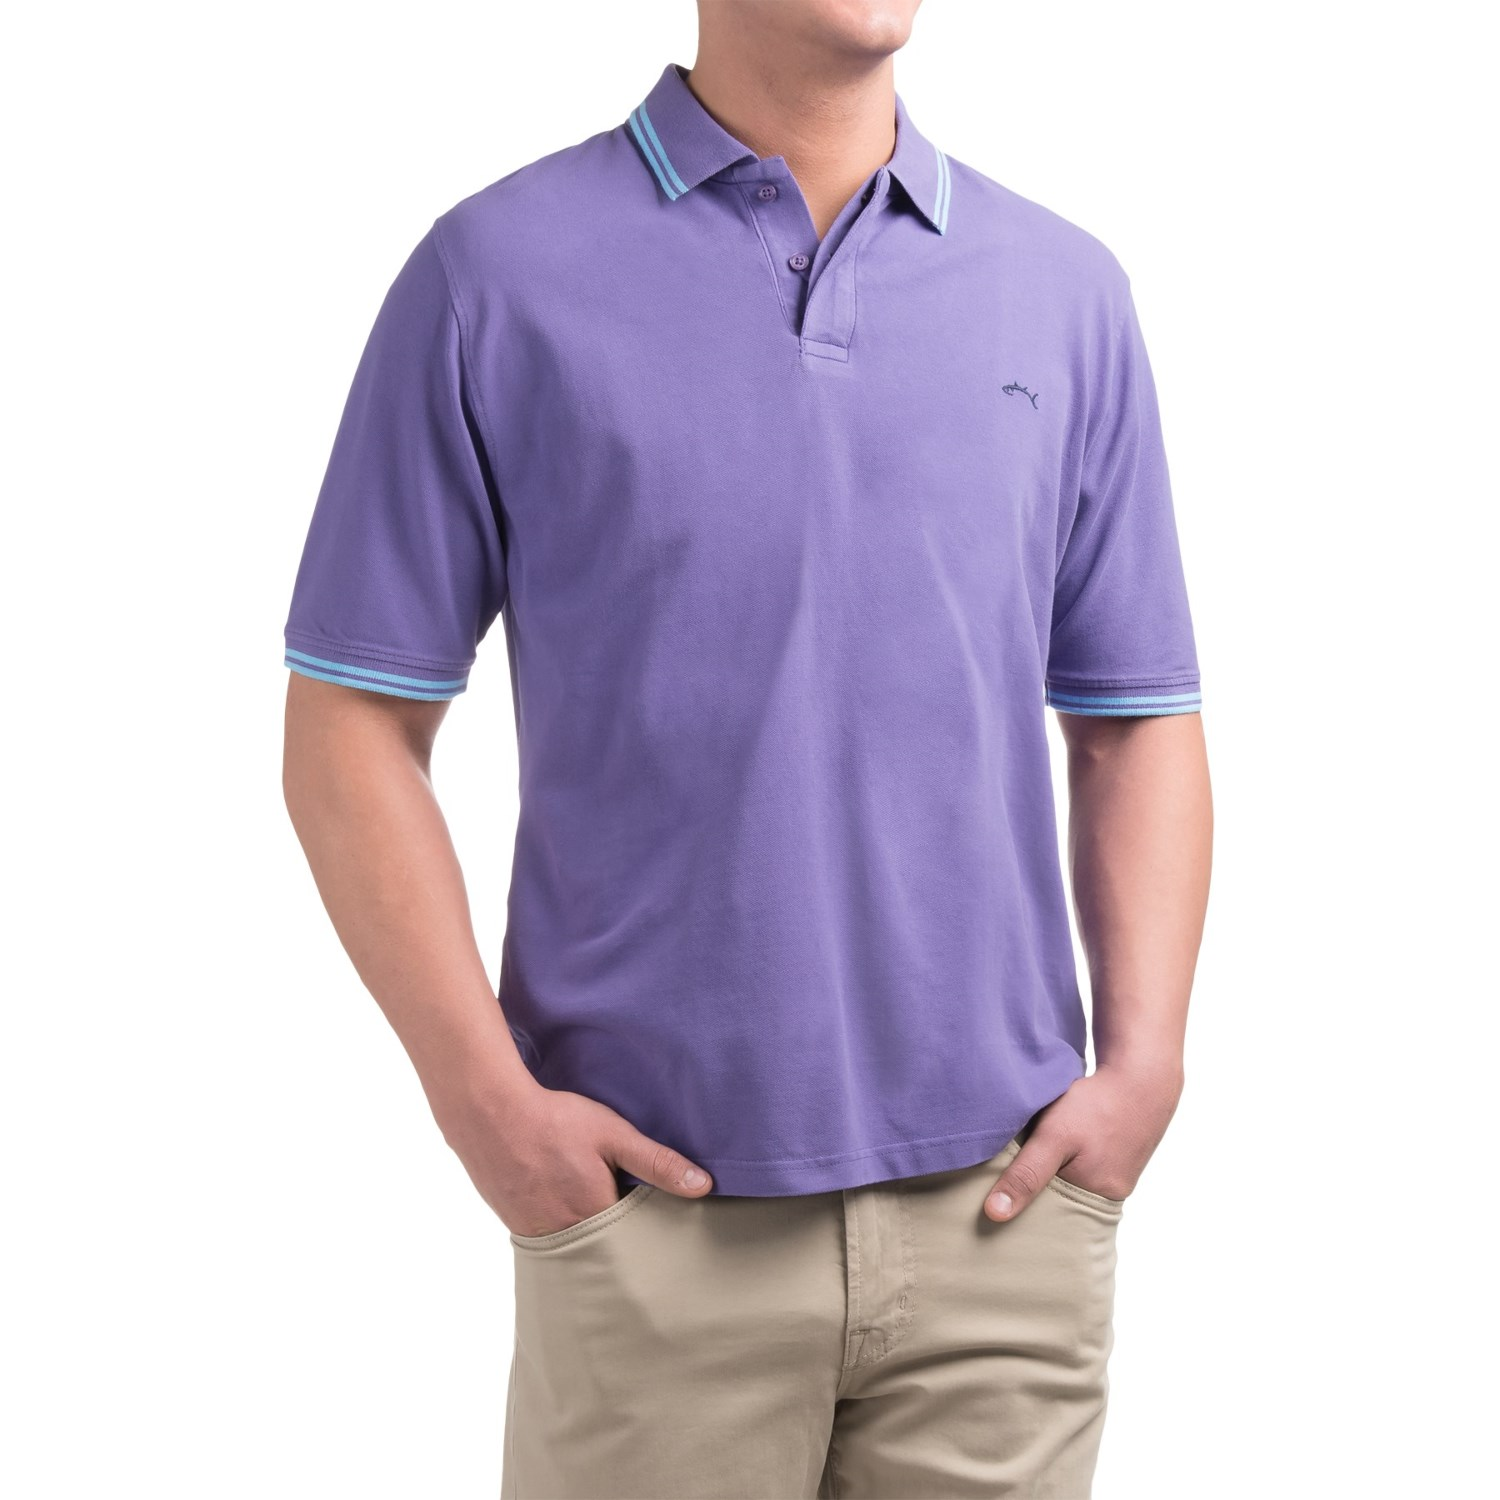 Bluefin rhode island polo shirt for men save 53 Man in polo shirt